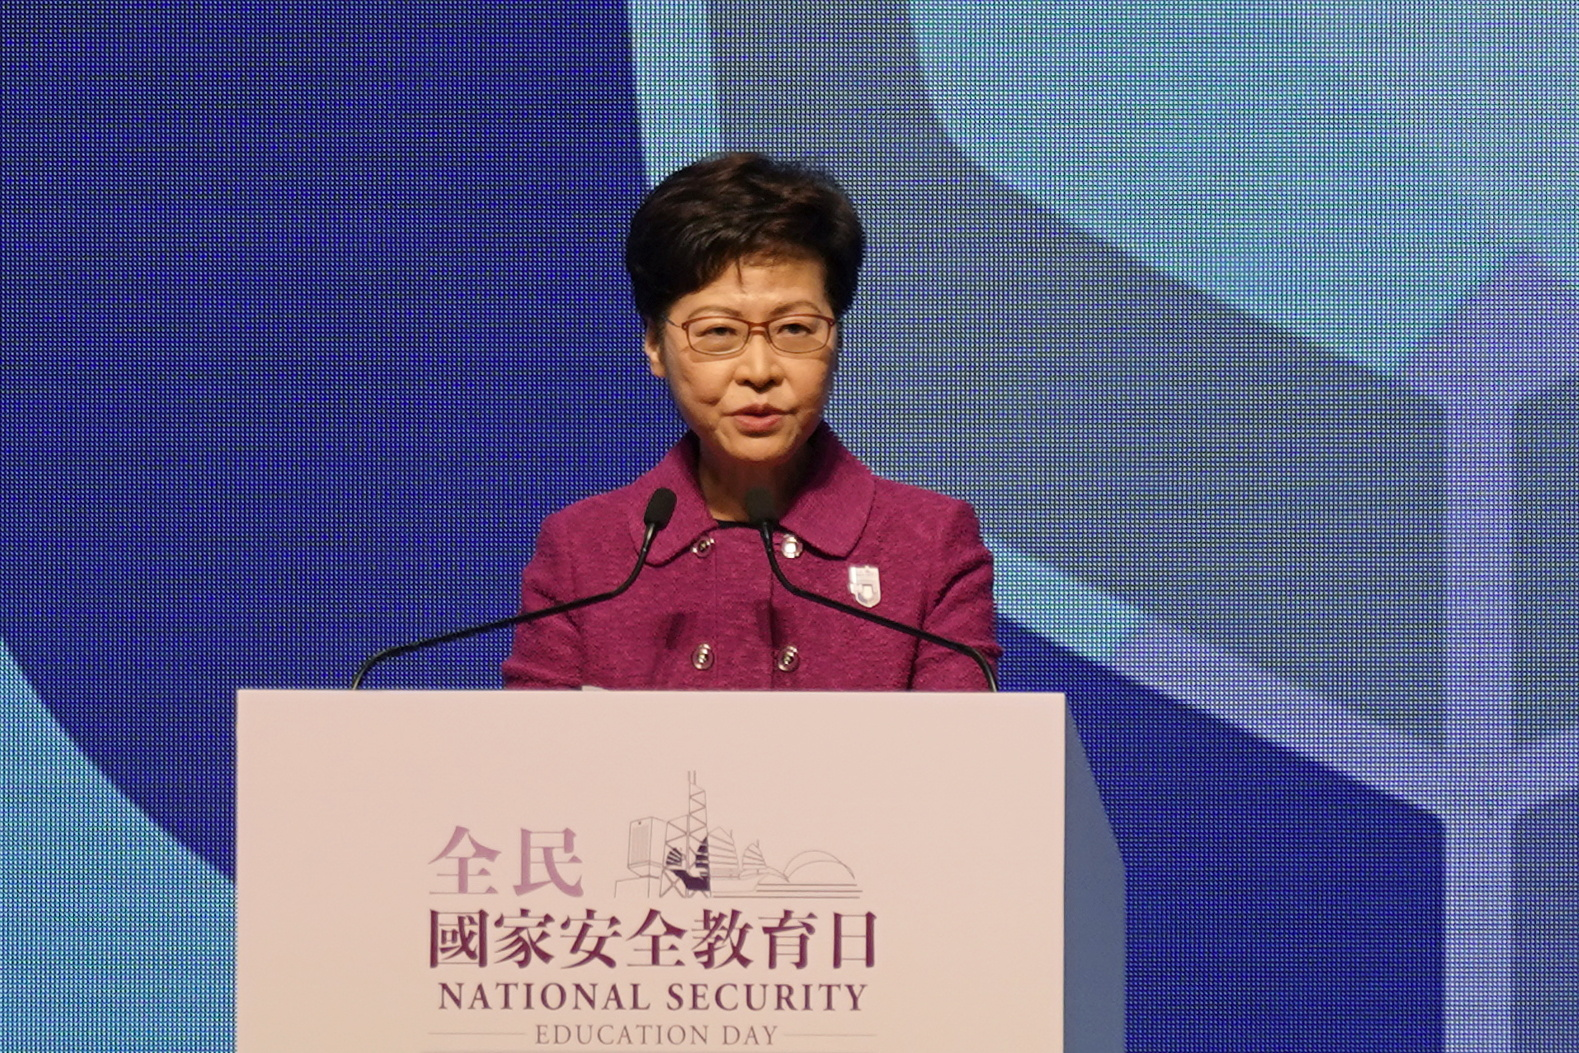 Hong Kong Chief Executive Carrie Lam speaks at a ceremony marking the National Security Education Day in Hong Kong, China April 15, 2021. REUTERS/Lam Yik